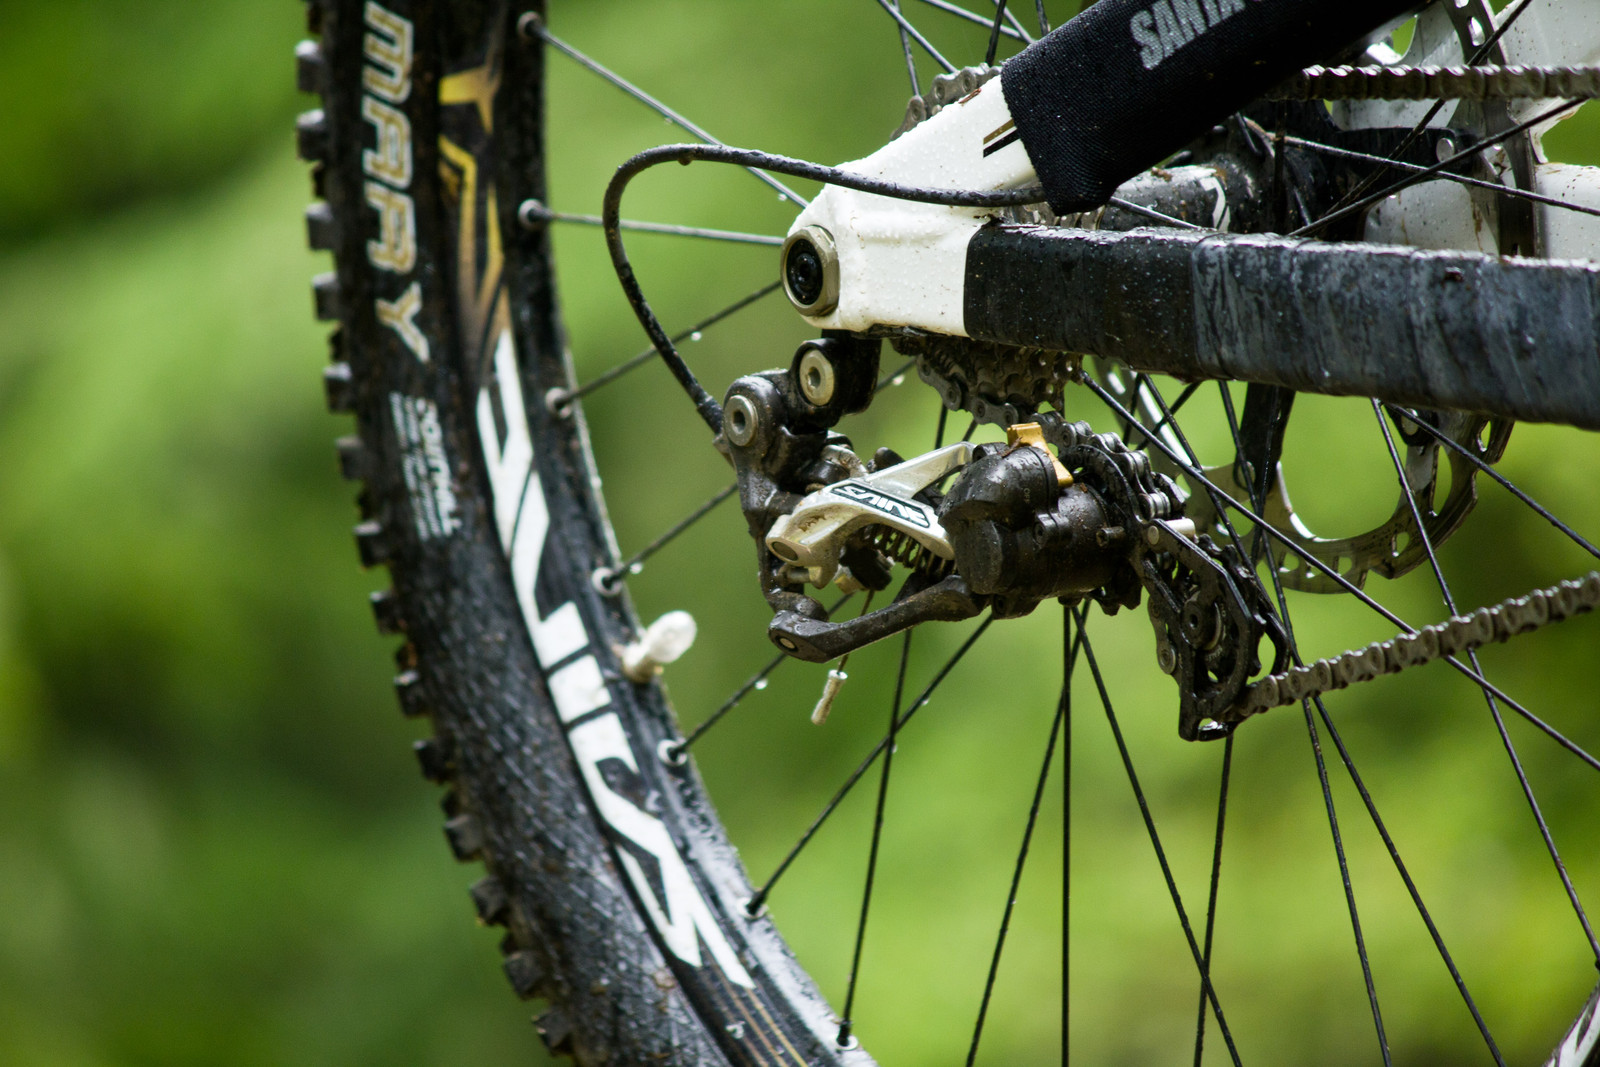 Shimano Saint RD-M820 Short Cage Derailleur - First Look: Vital's Pre-Production Shimano Saint Equipped V-10 Carbon - Mountain Biking Pictures - Vital MTB